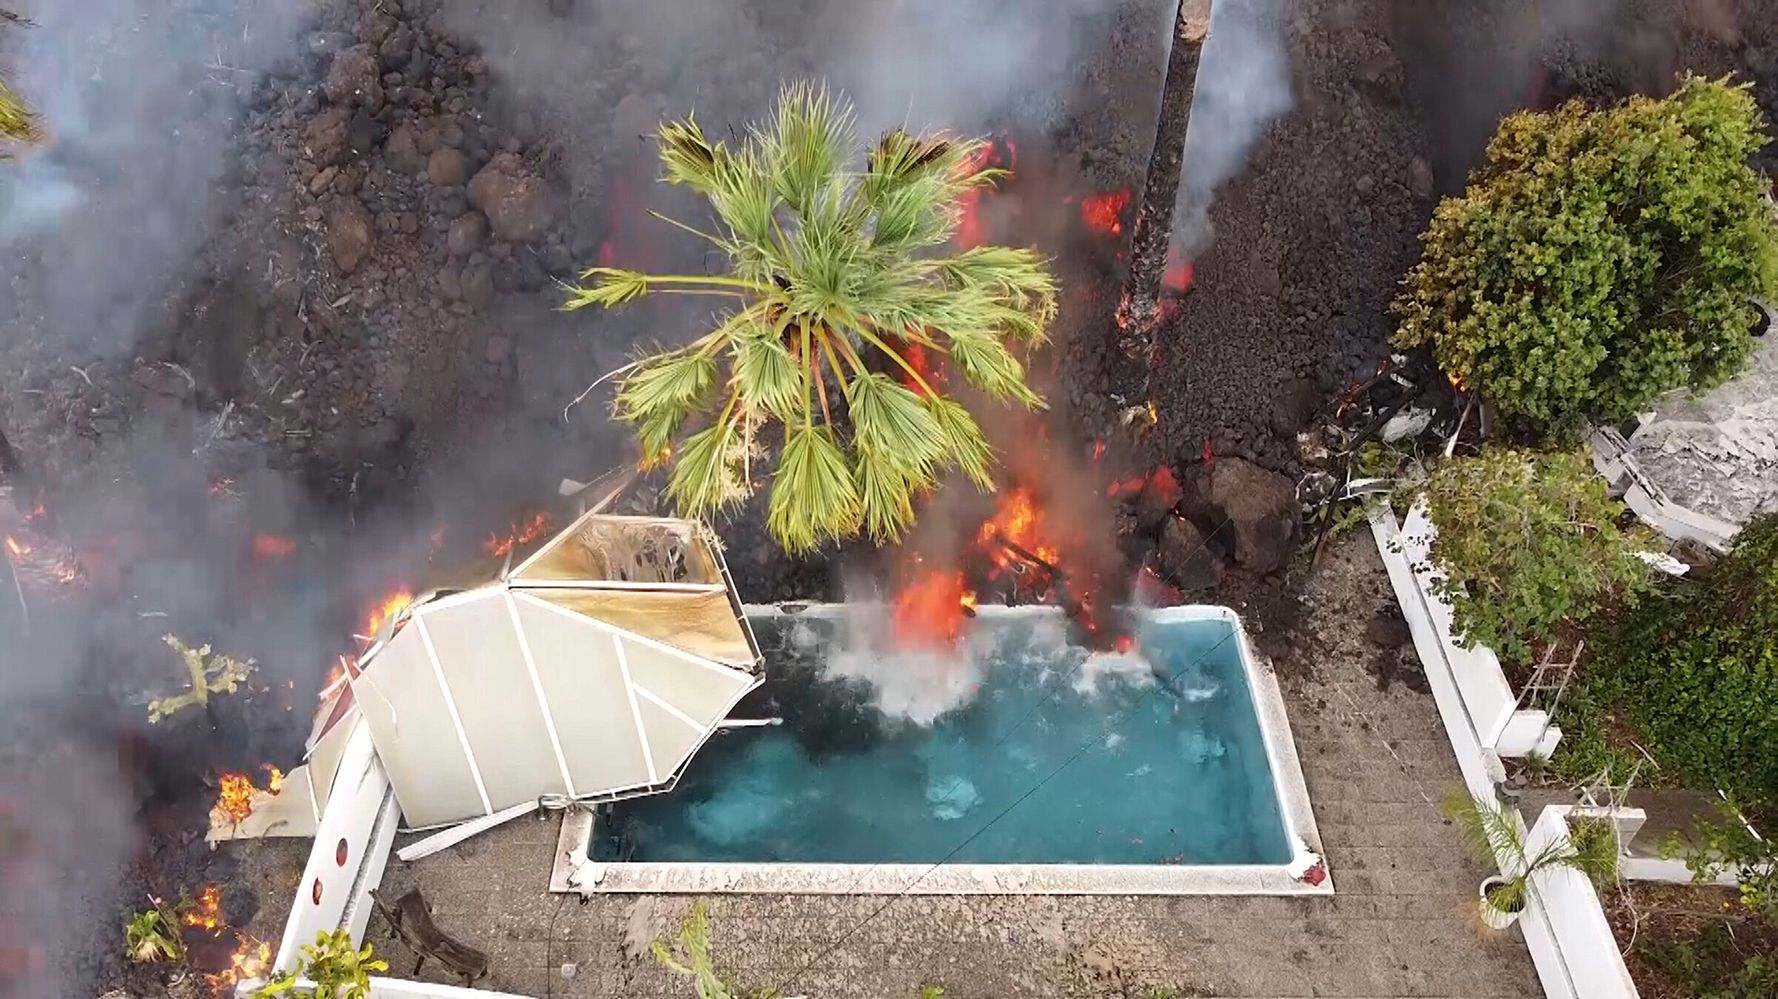 Lava From Spanish Volcano Slows Down, Sparking Fears Of Further Devastation